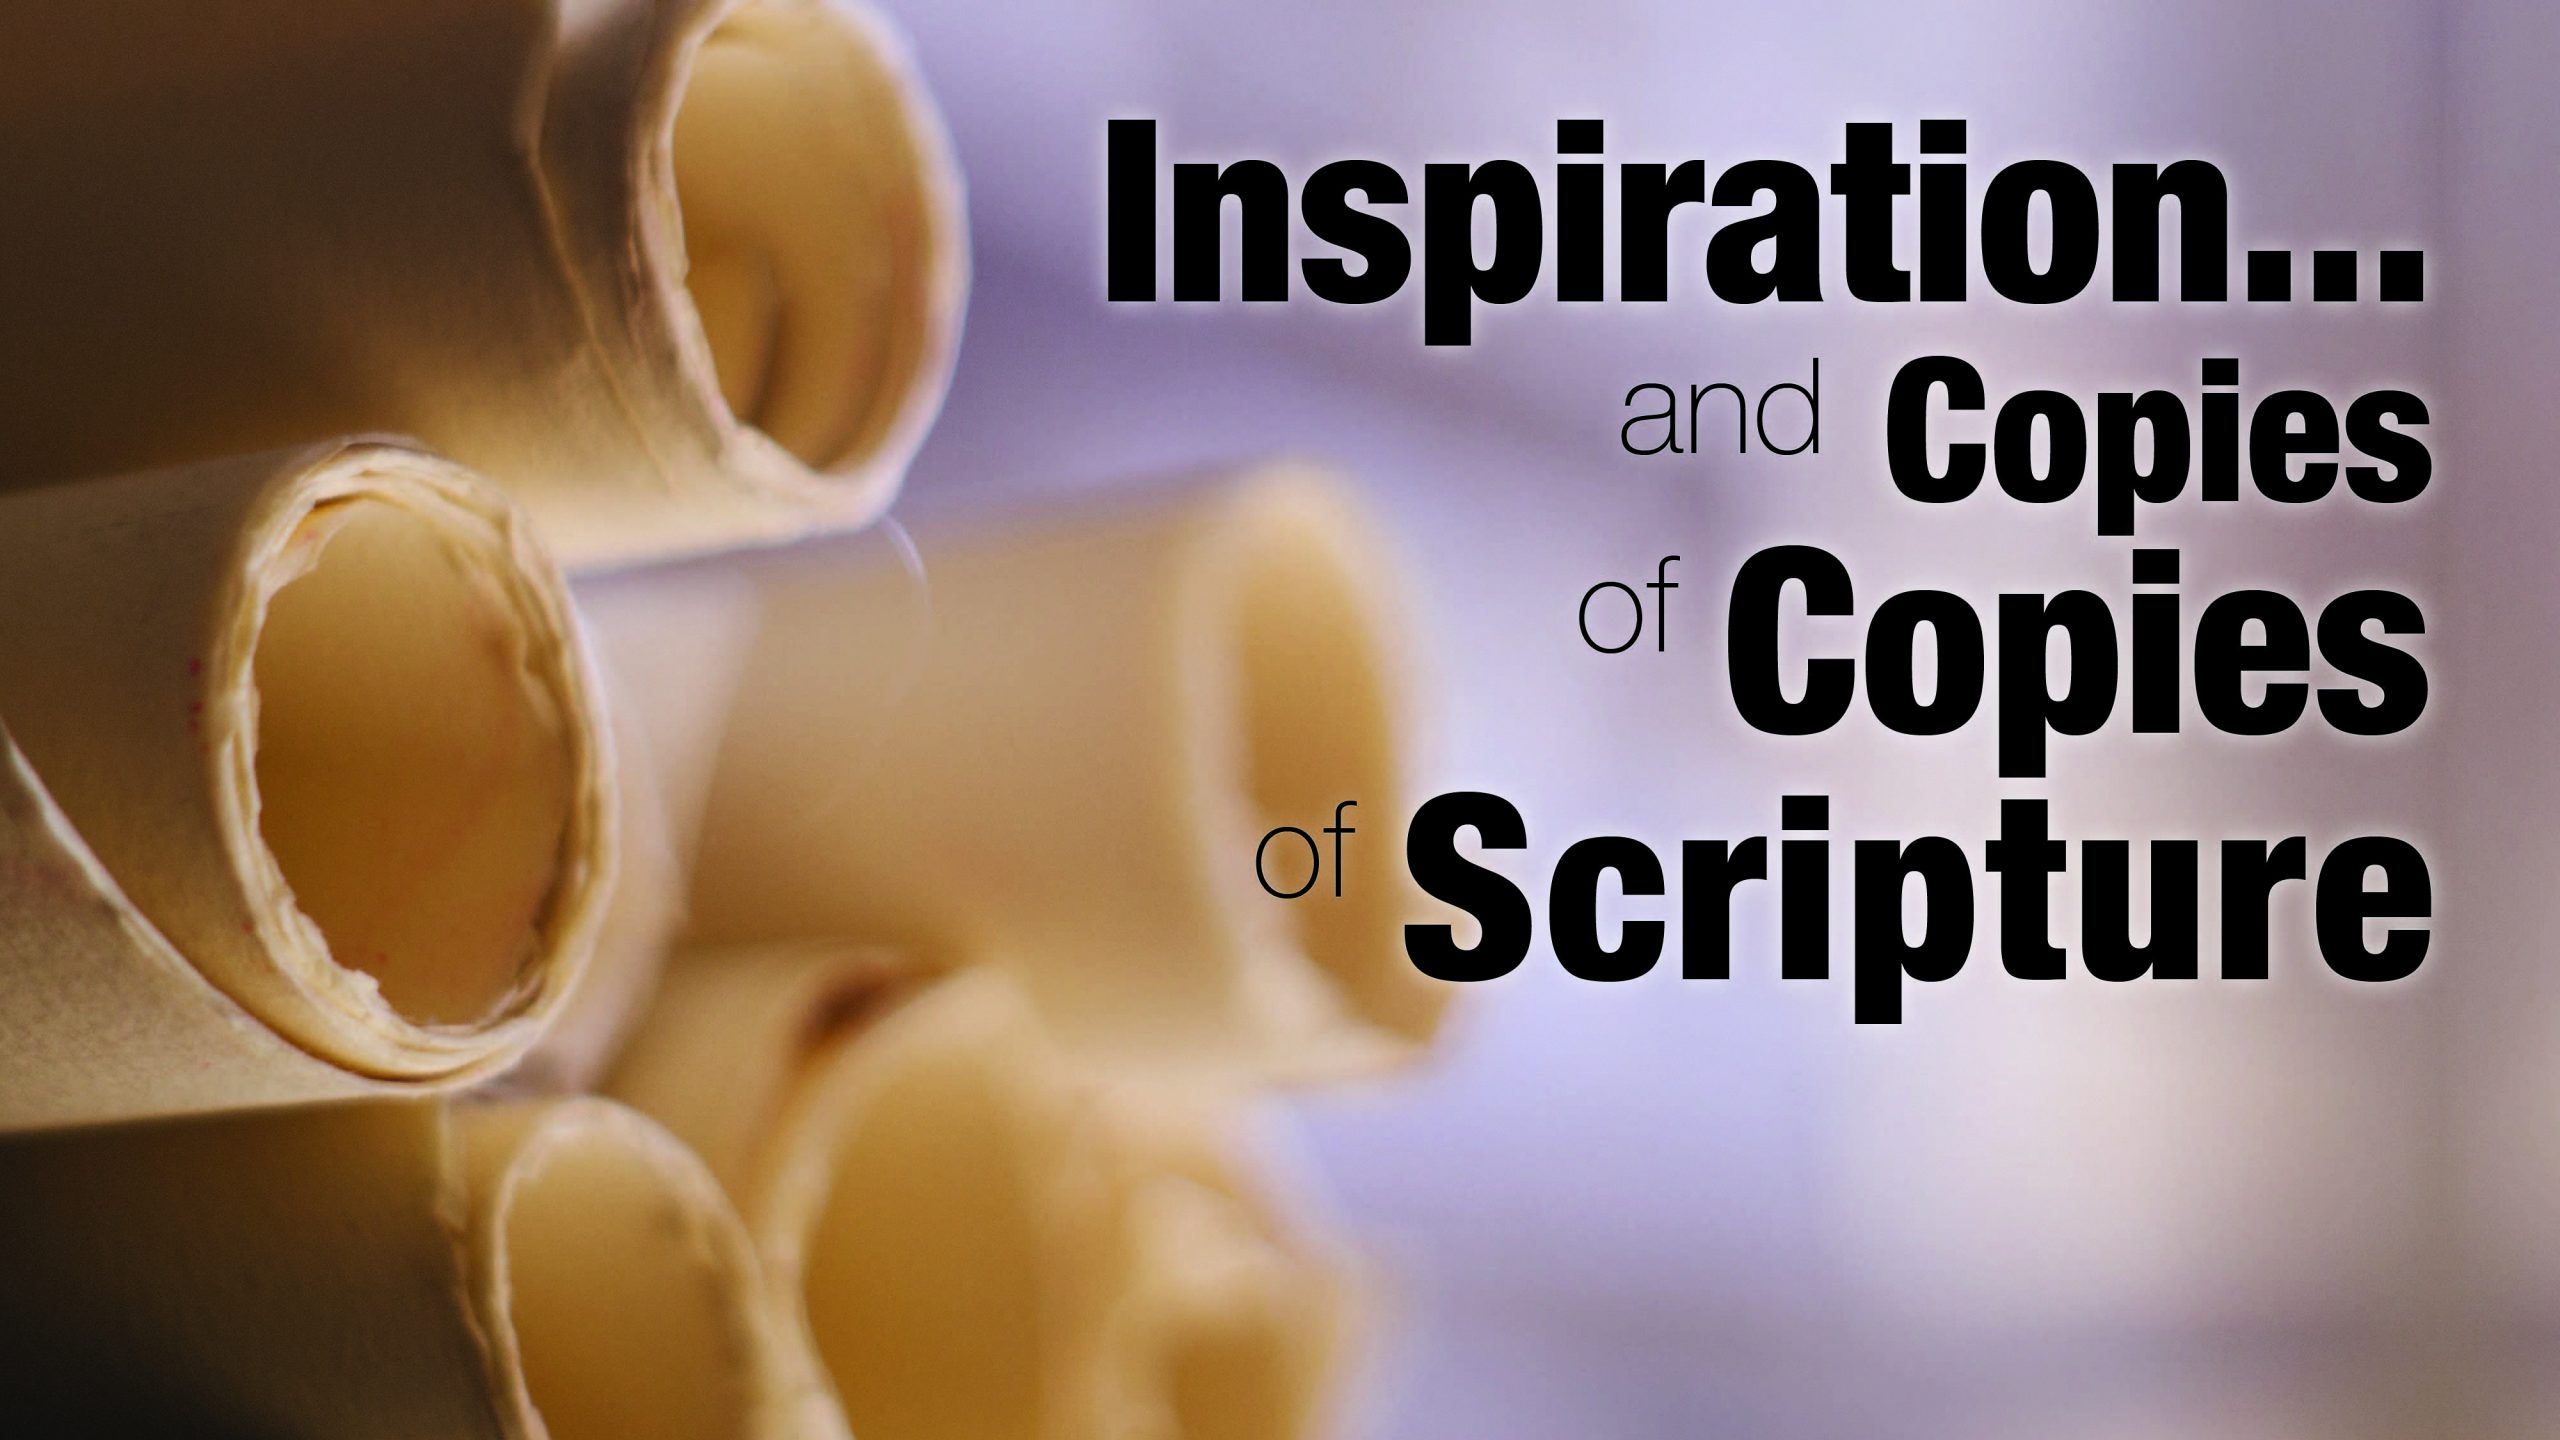 Inspiration and Copies of Copies of Scripture